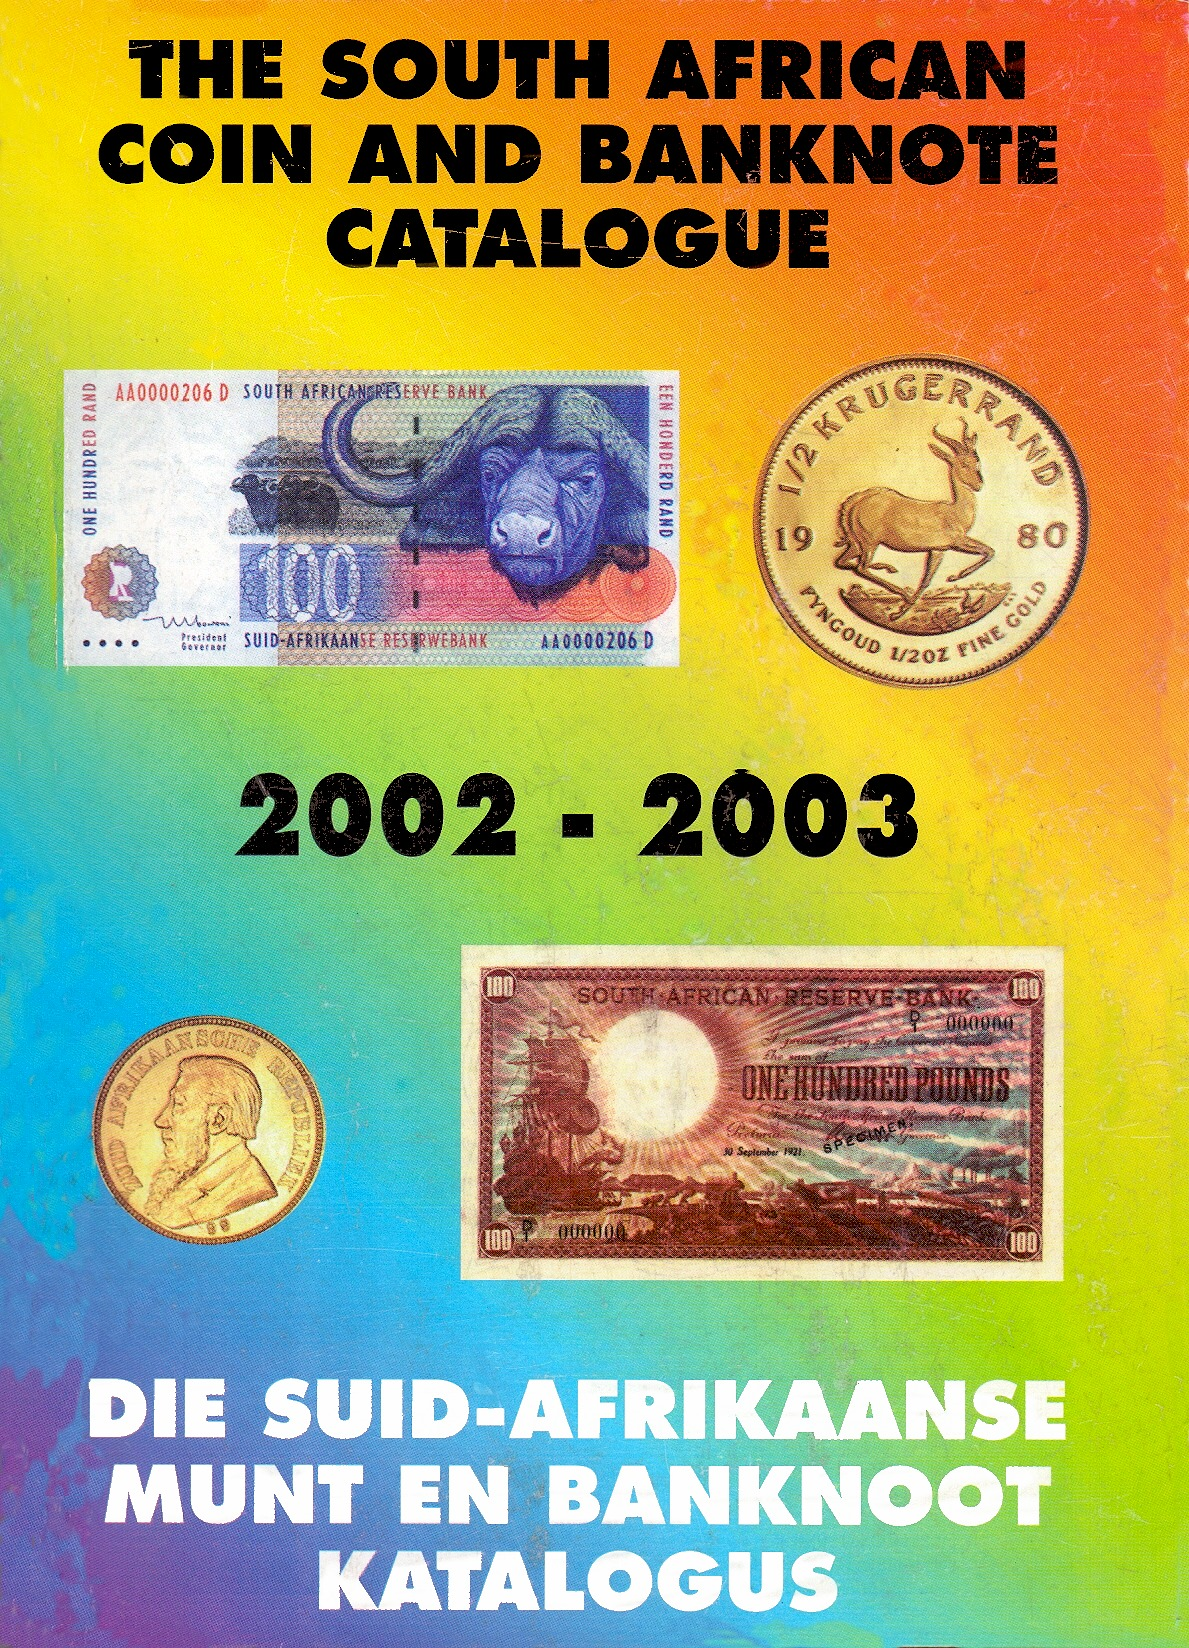 Randburg Coin Catalogue 2002 to 2003